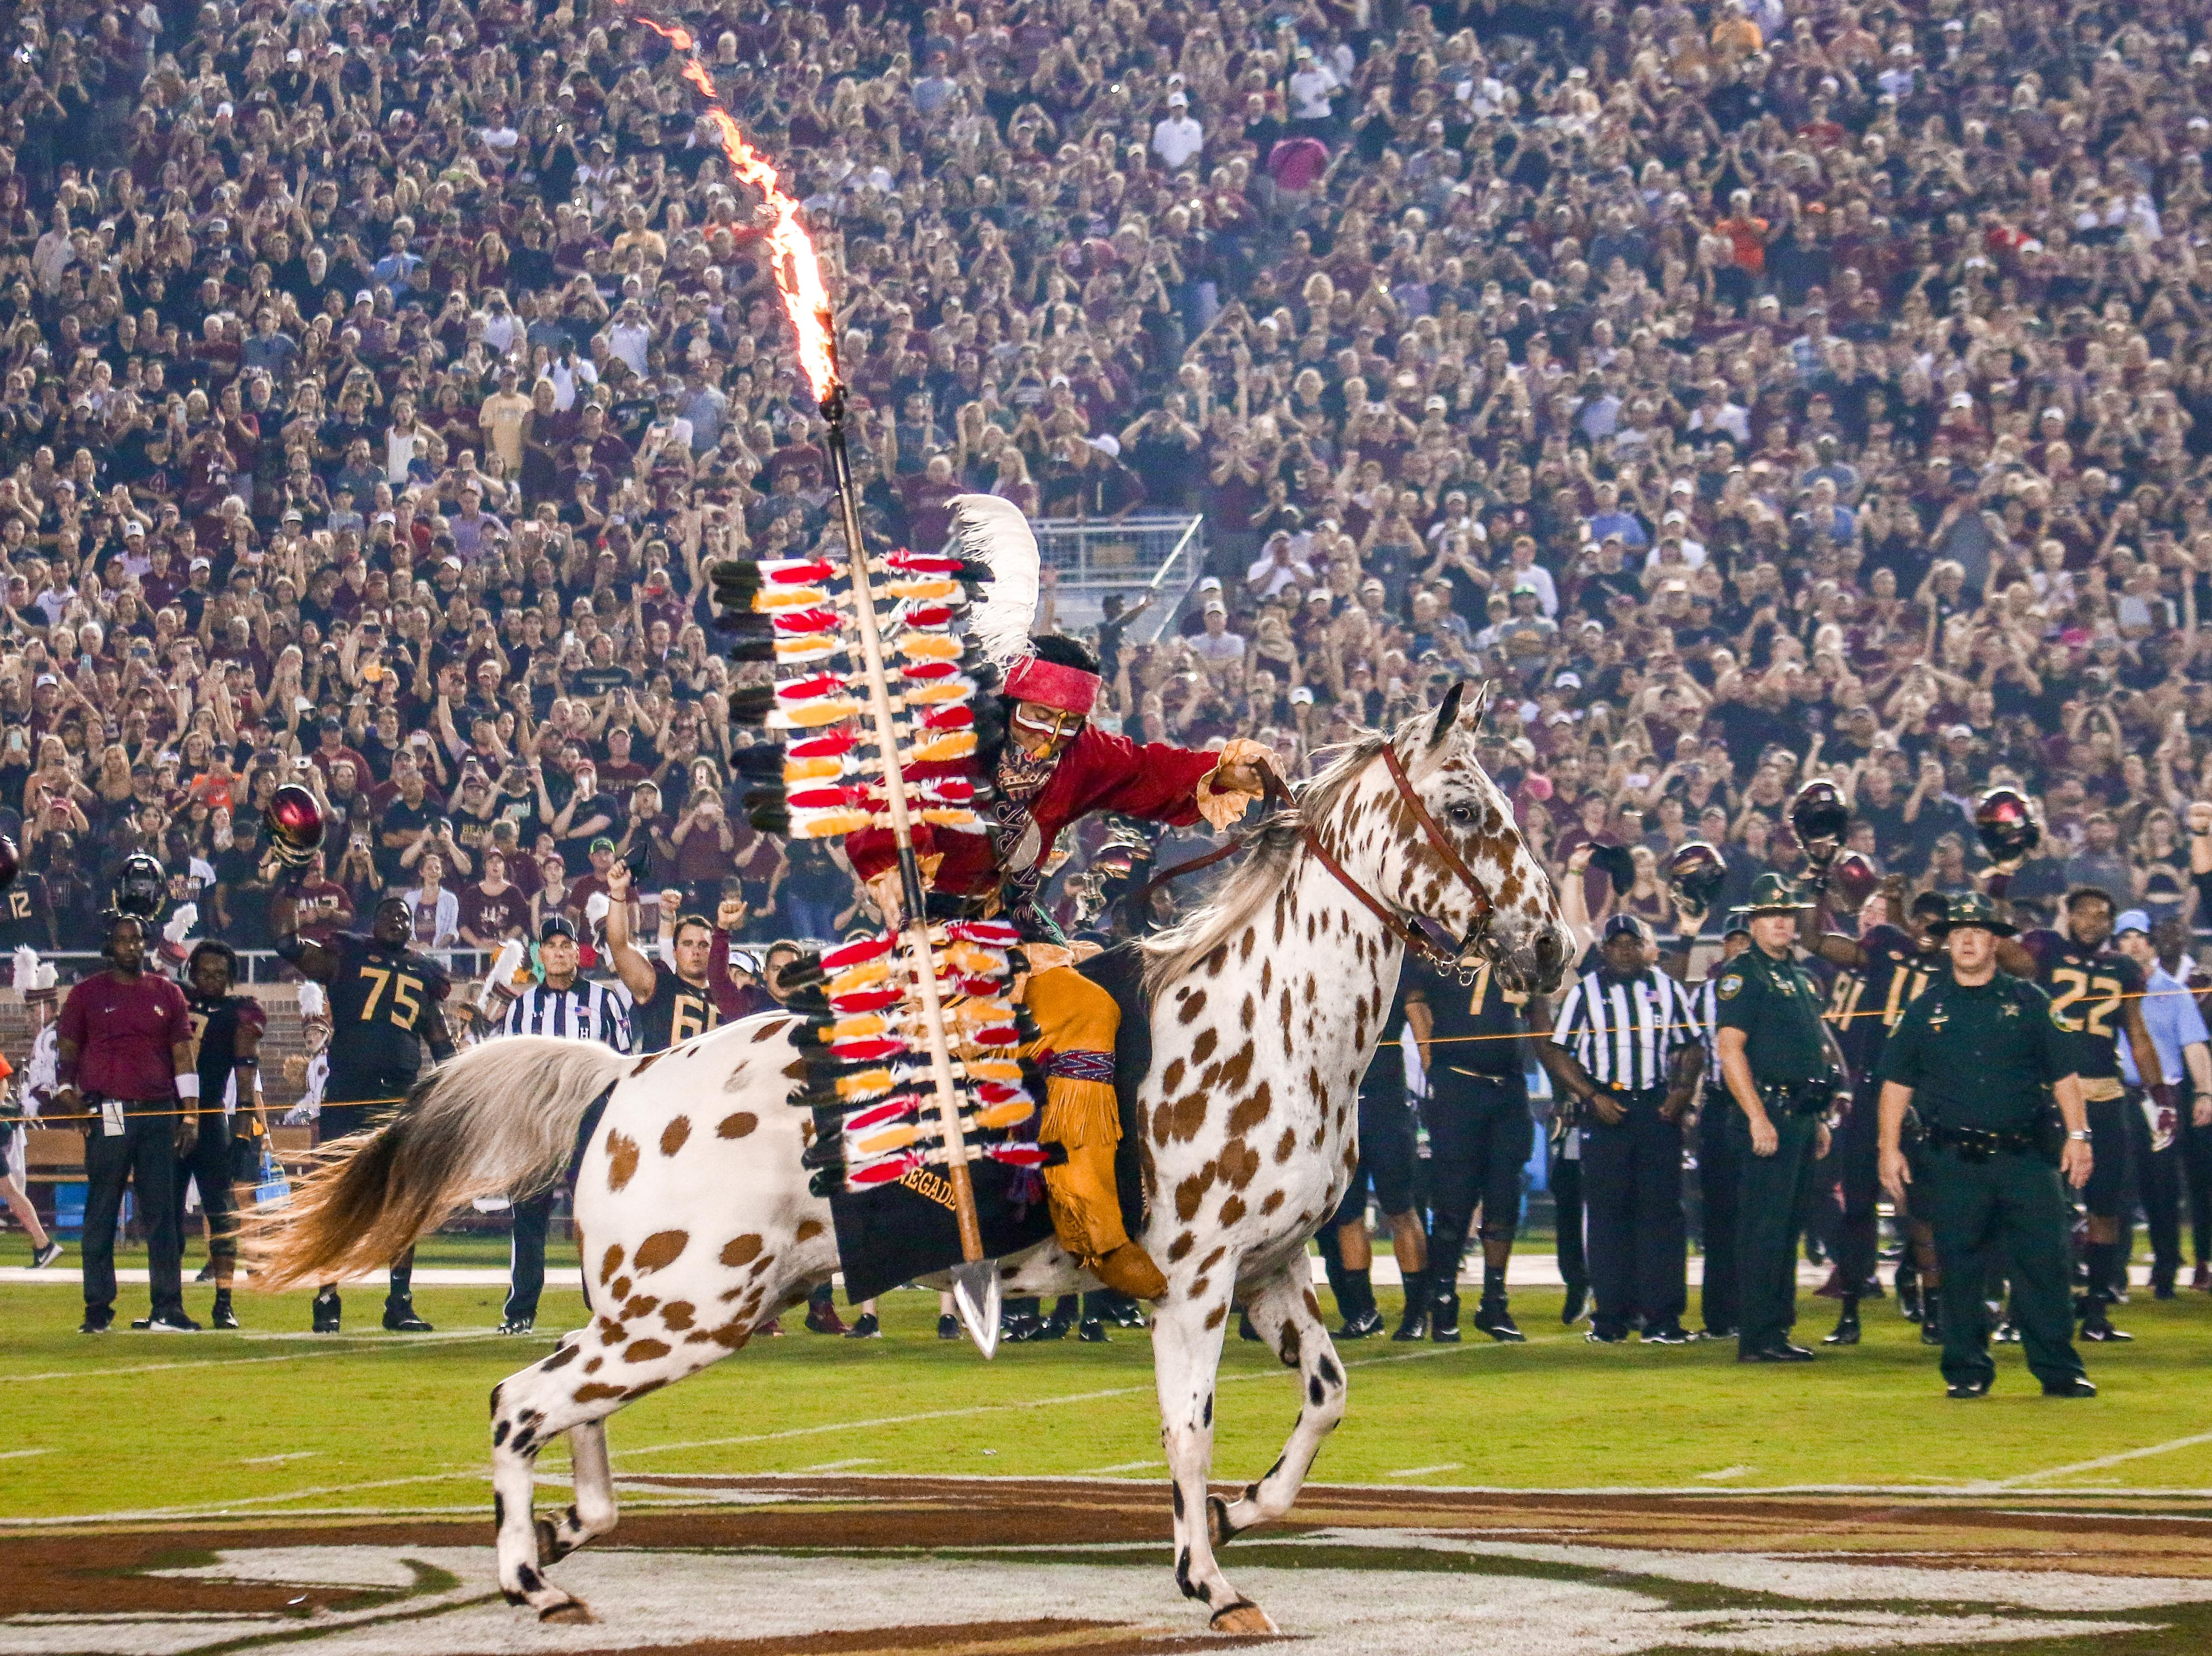 Osceola and Renegade made Doak Campbell stadium erupt with the planting of the Spear. This iconic tradition energized the whole stadium and created a magical moment before FSU took on #20 Virginia Tech on Monday, September 3rd.